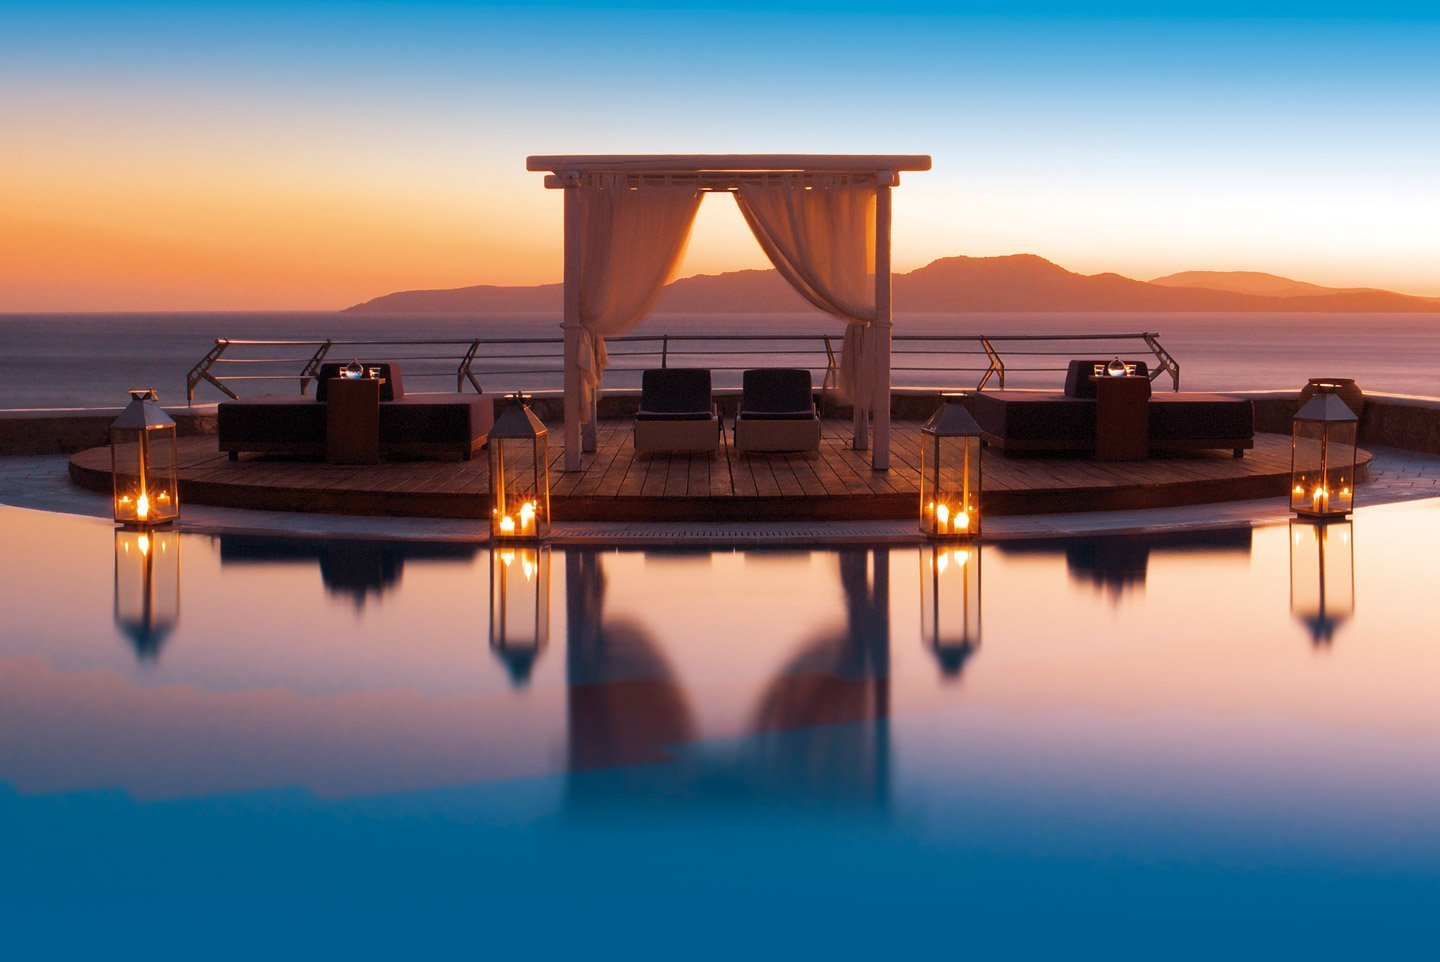 Sitting area by the crystal clear pool overlooking the Aegean sea at sunset.